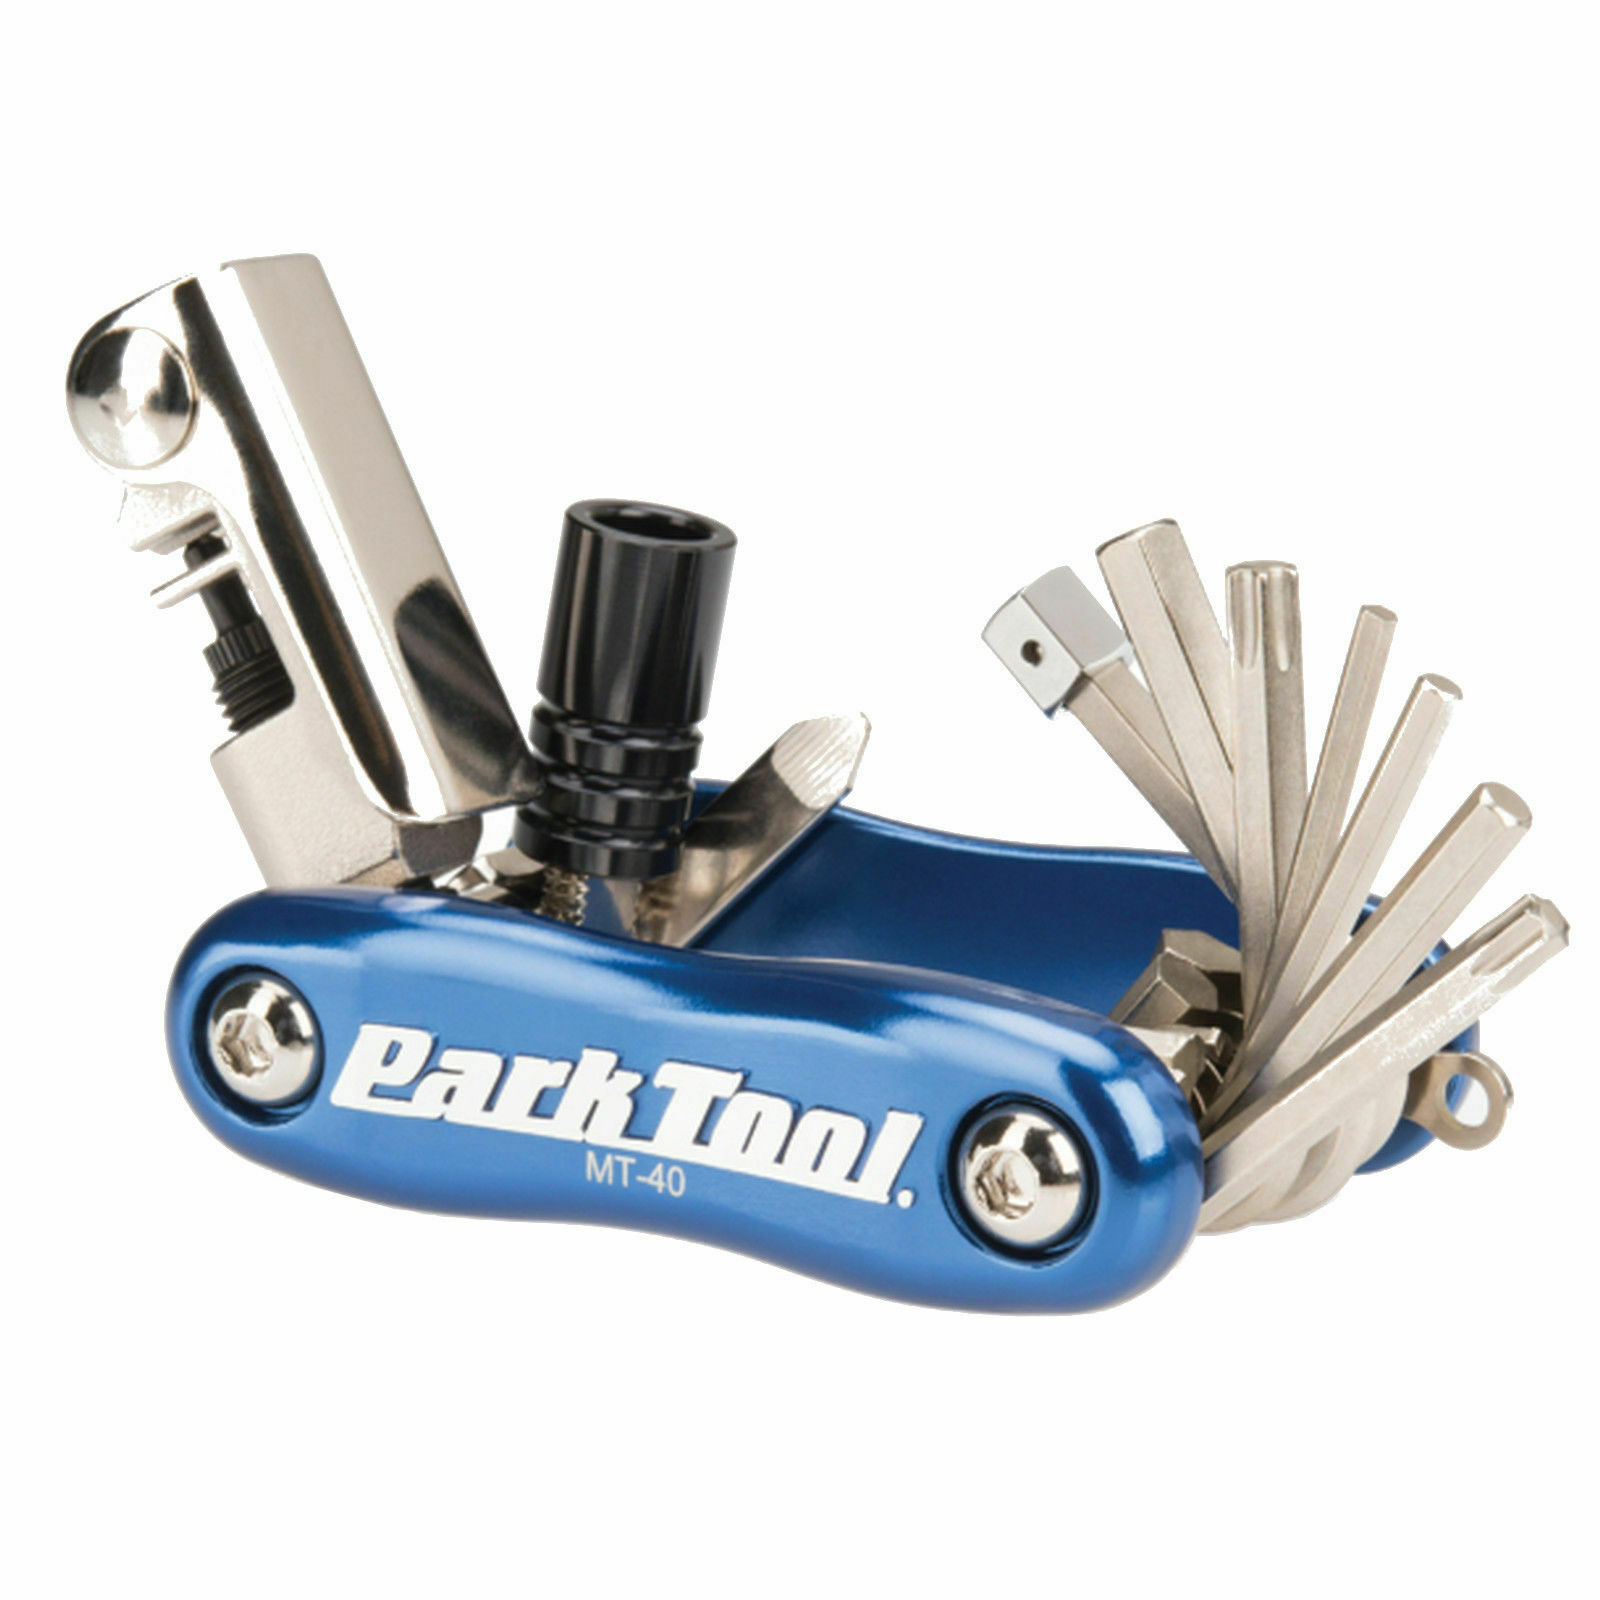 Park Tool Mt-40 Mini Bike Multi Tool With Chain Tool And Co2 Inflator Adaptor